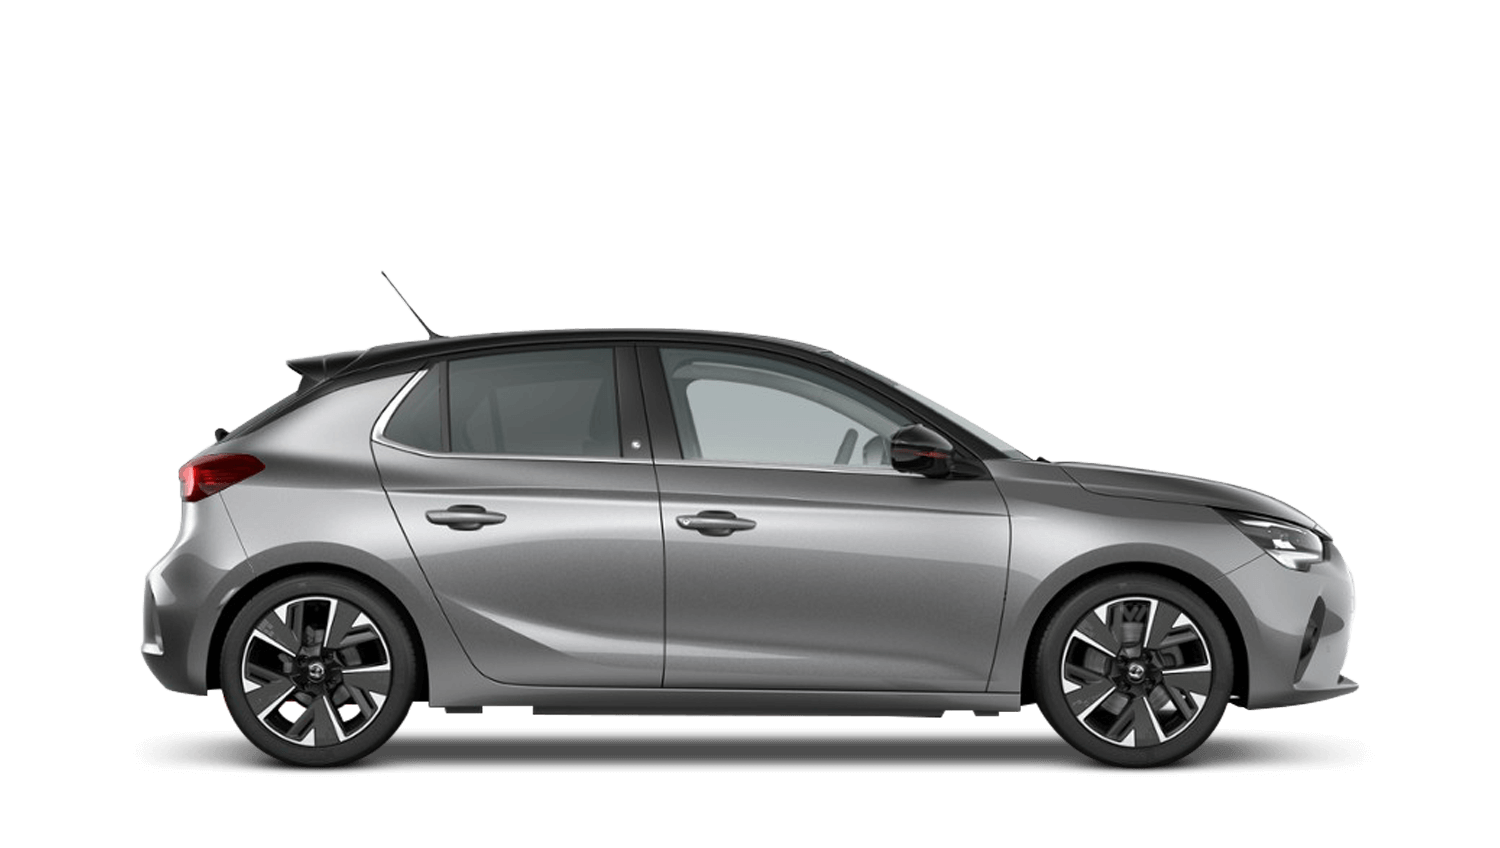 Quartz Grey (Metallic) All-New Vauxhall Corsa-e